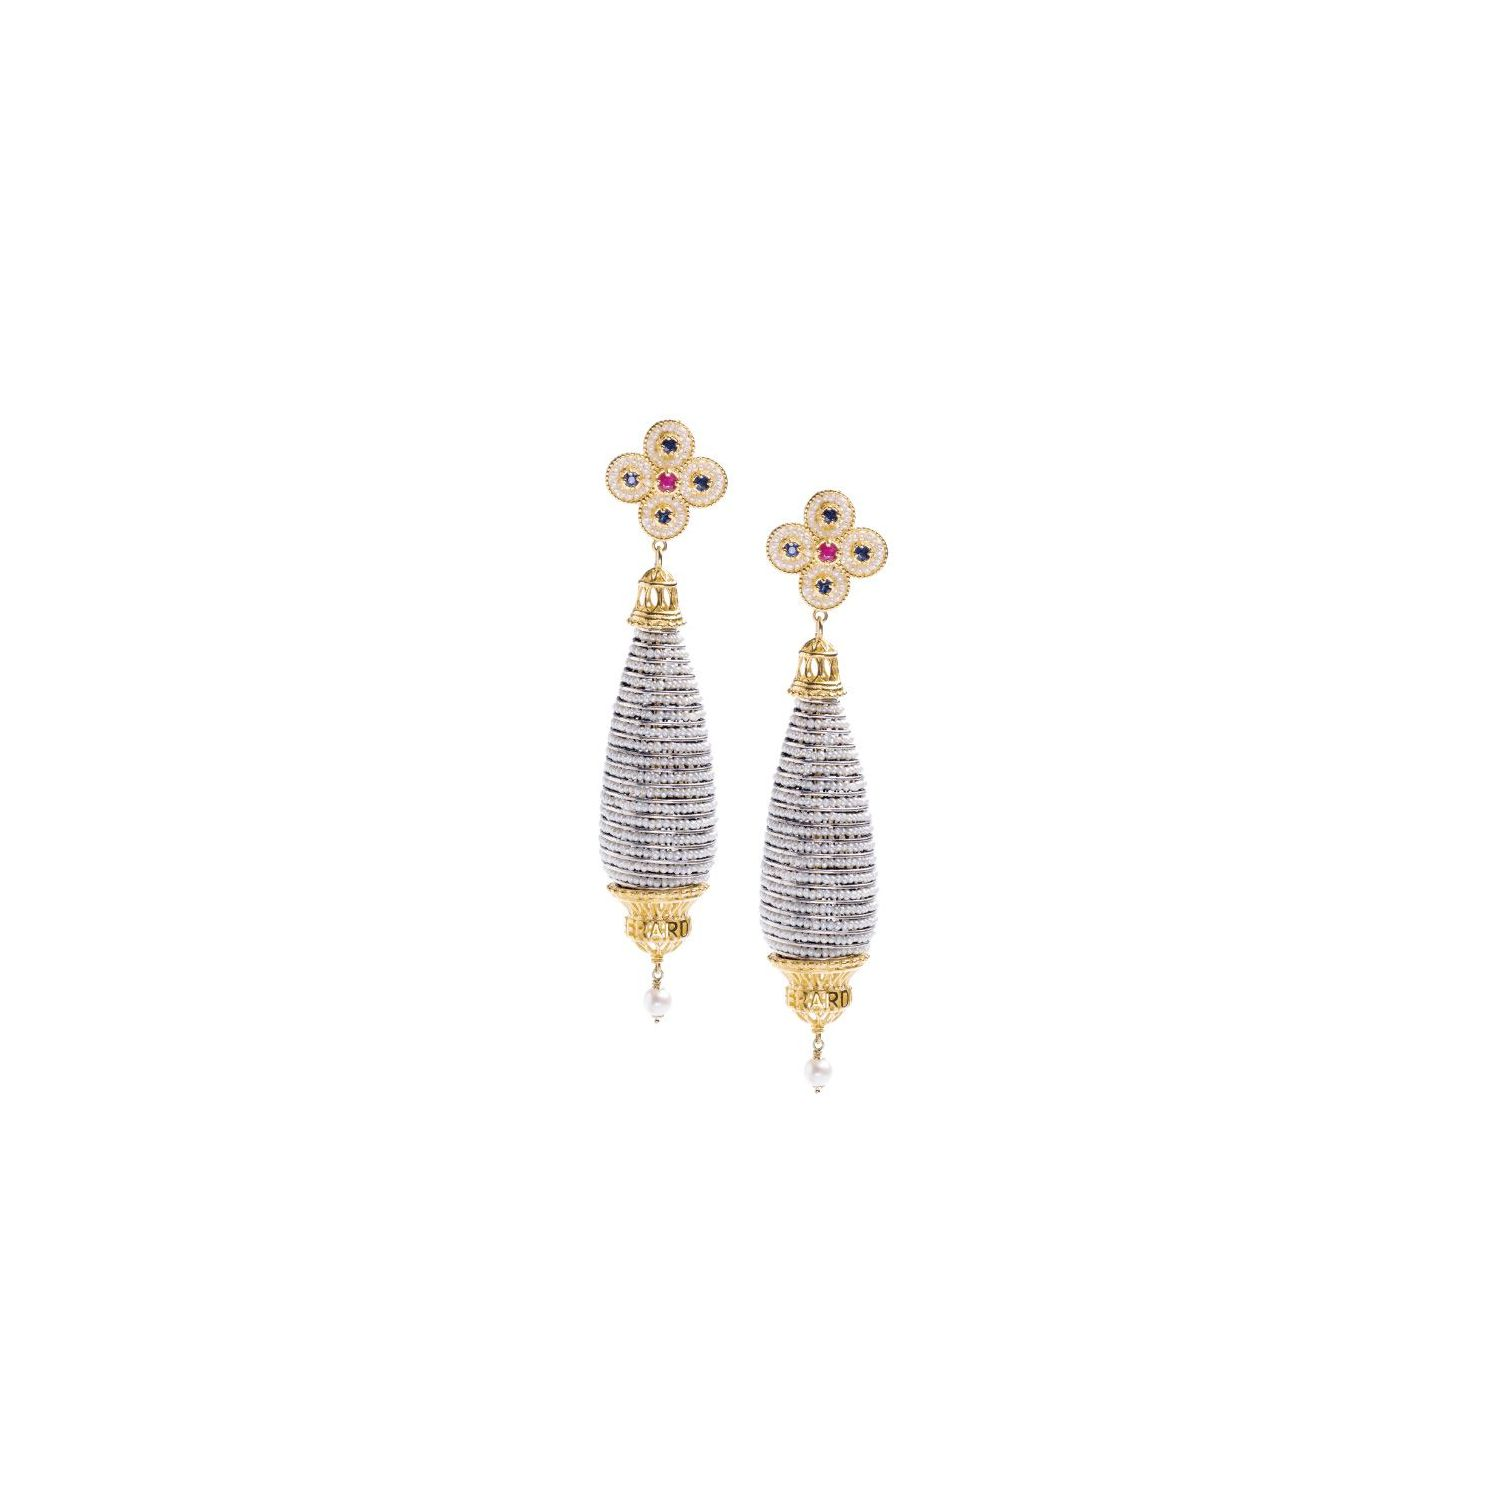 Pendant earrings with Pearls and precious Stones (14247)